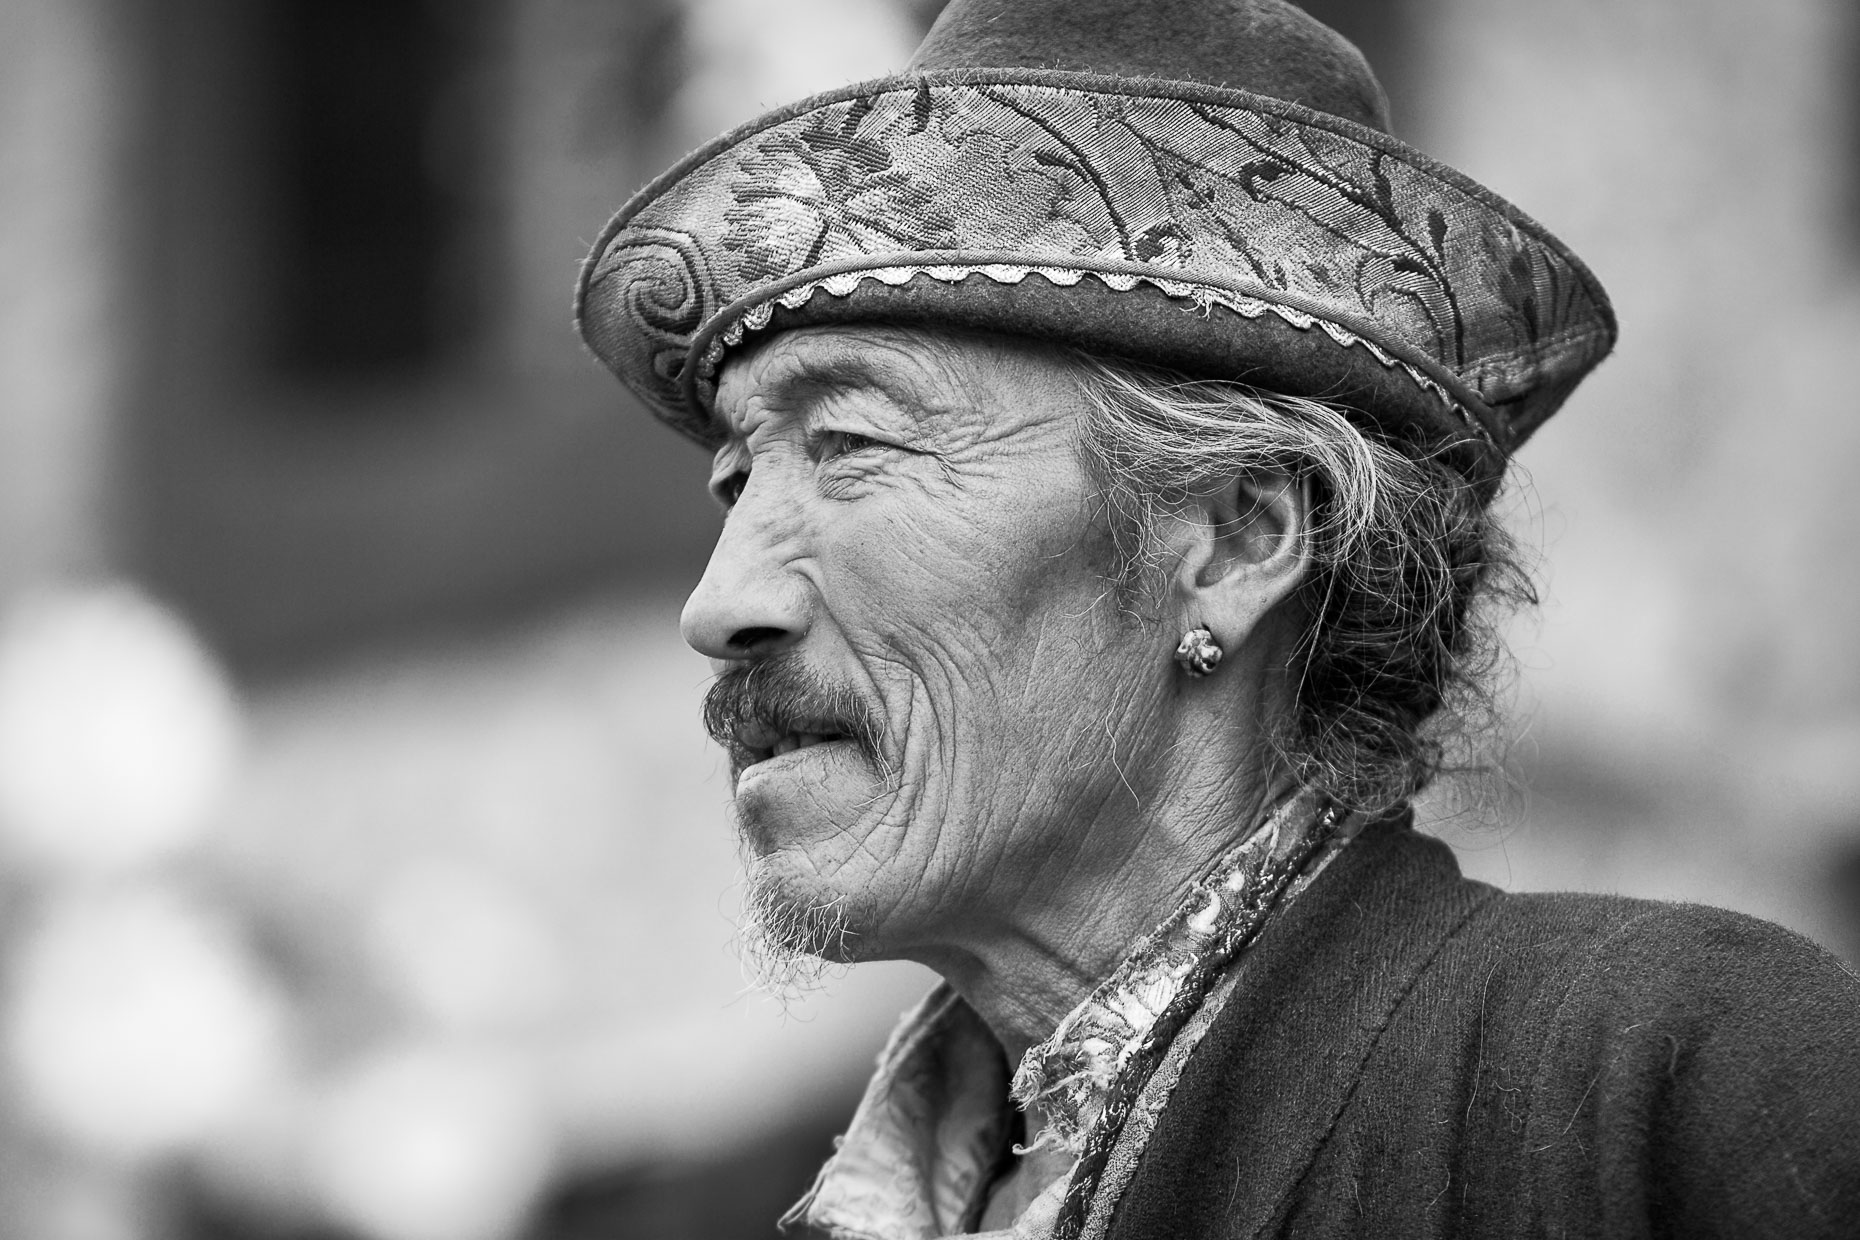 Man in Nyapo Village, Tibet